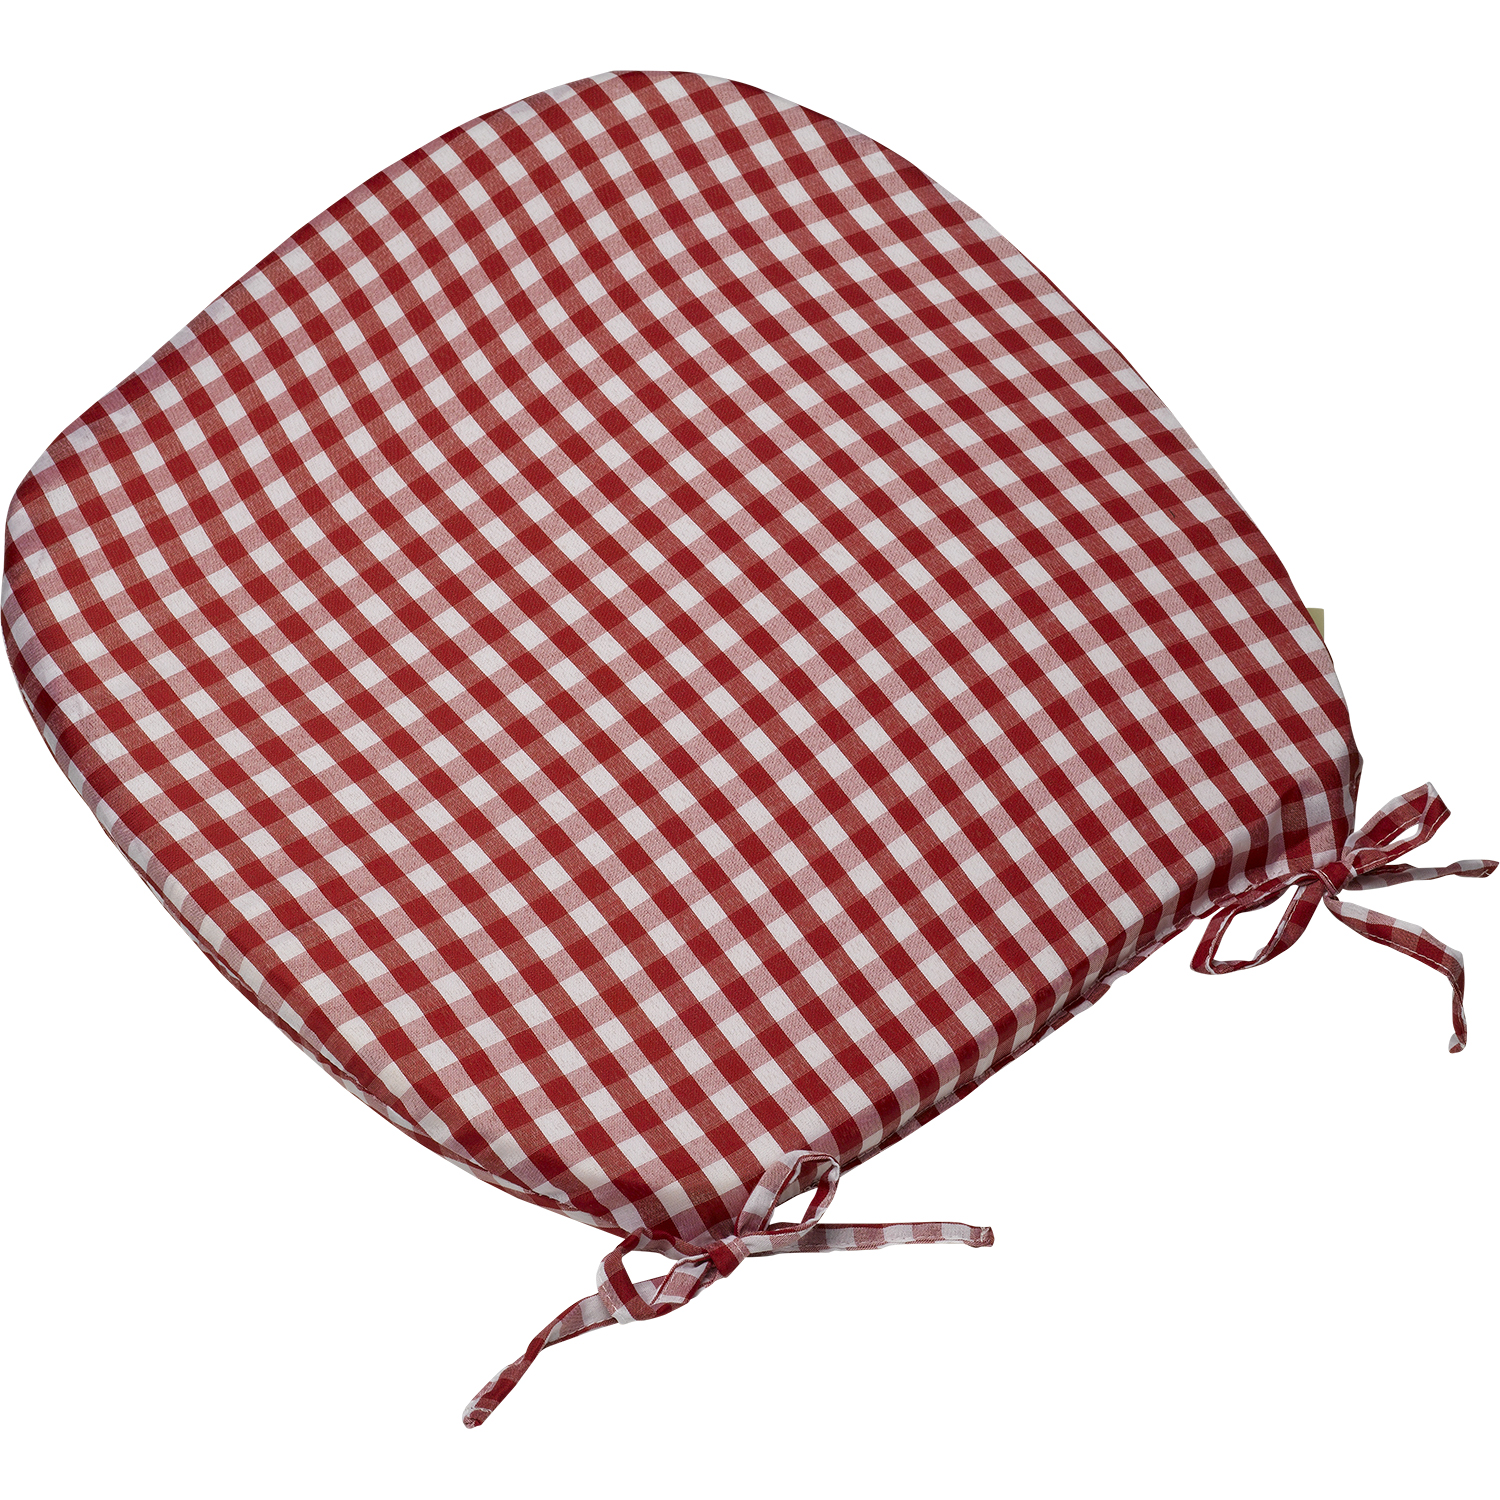 Gingham Chair Tie On Rounded Gingham Chair Seat Pad Cushion Outdoor